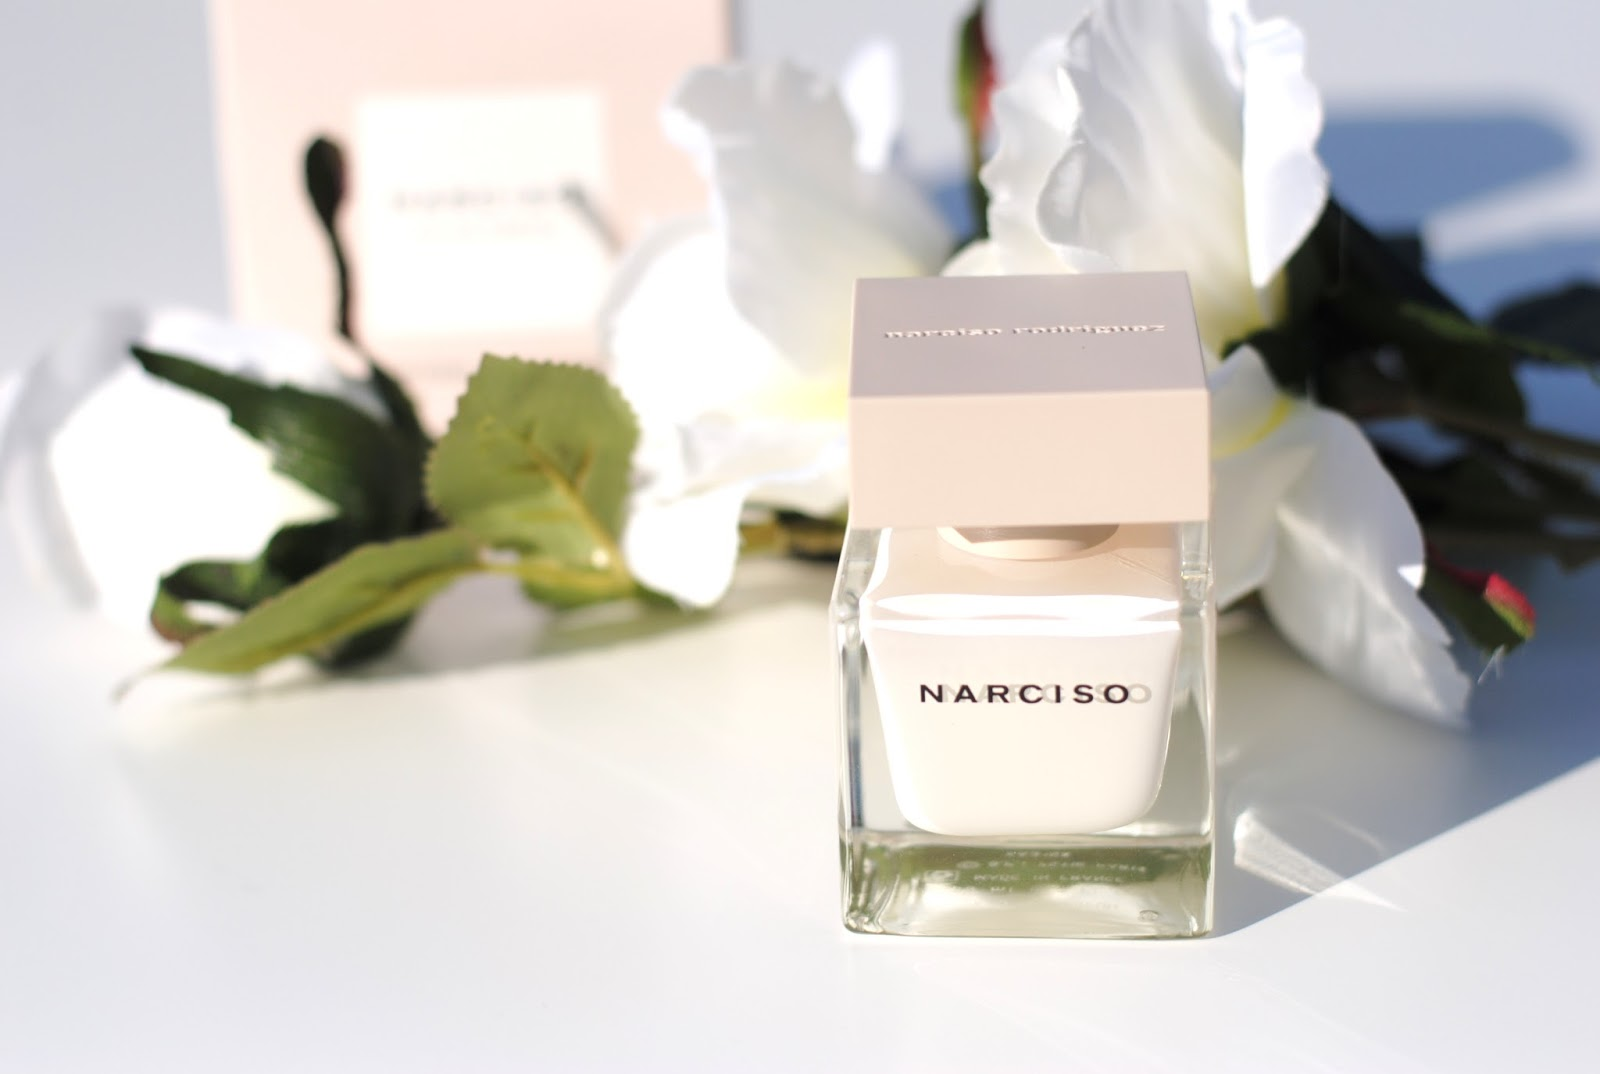 narciso narciso rodriguez review